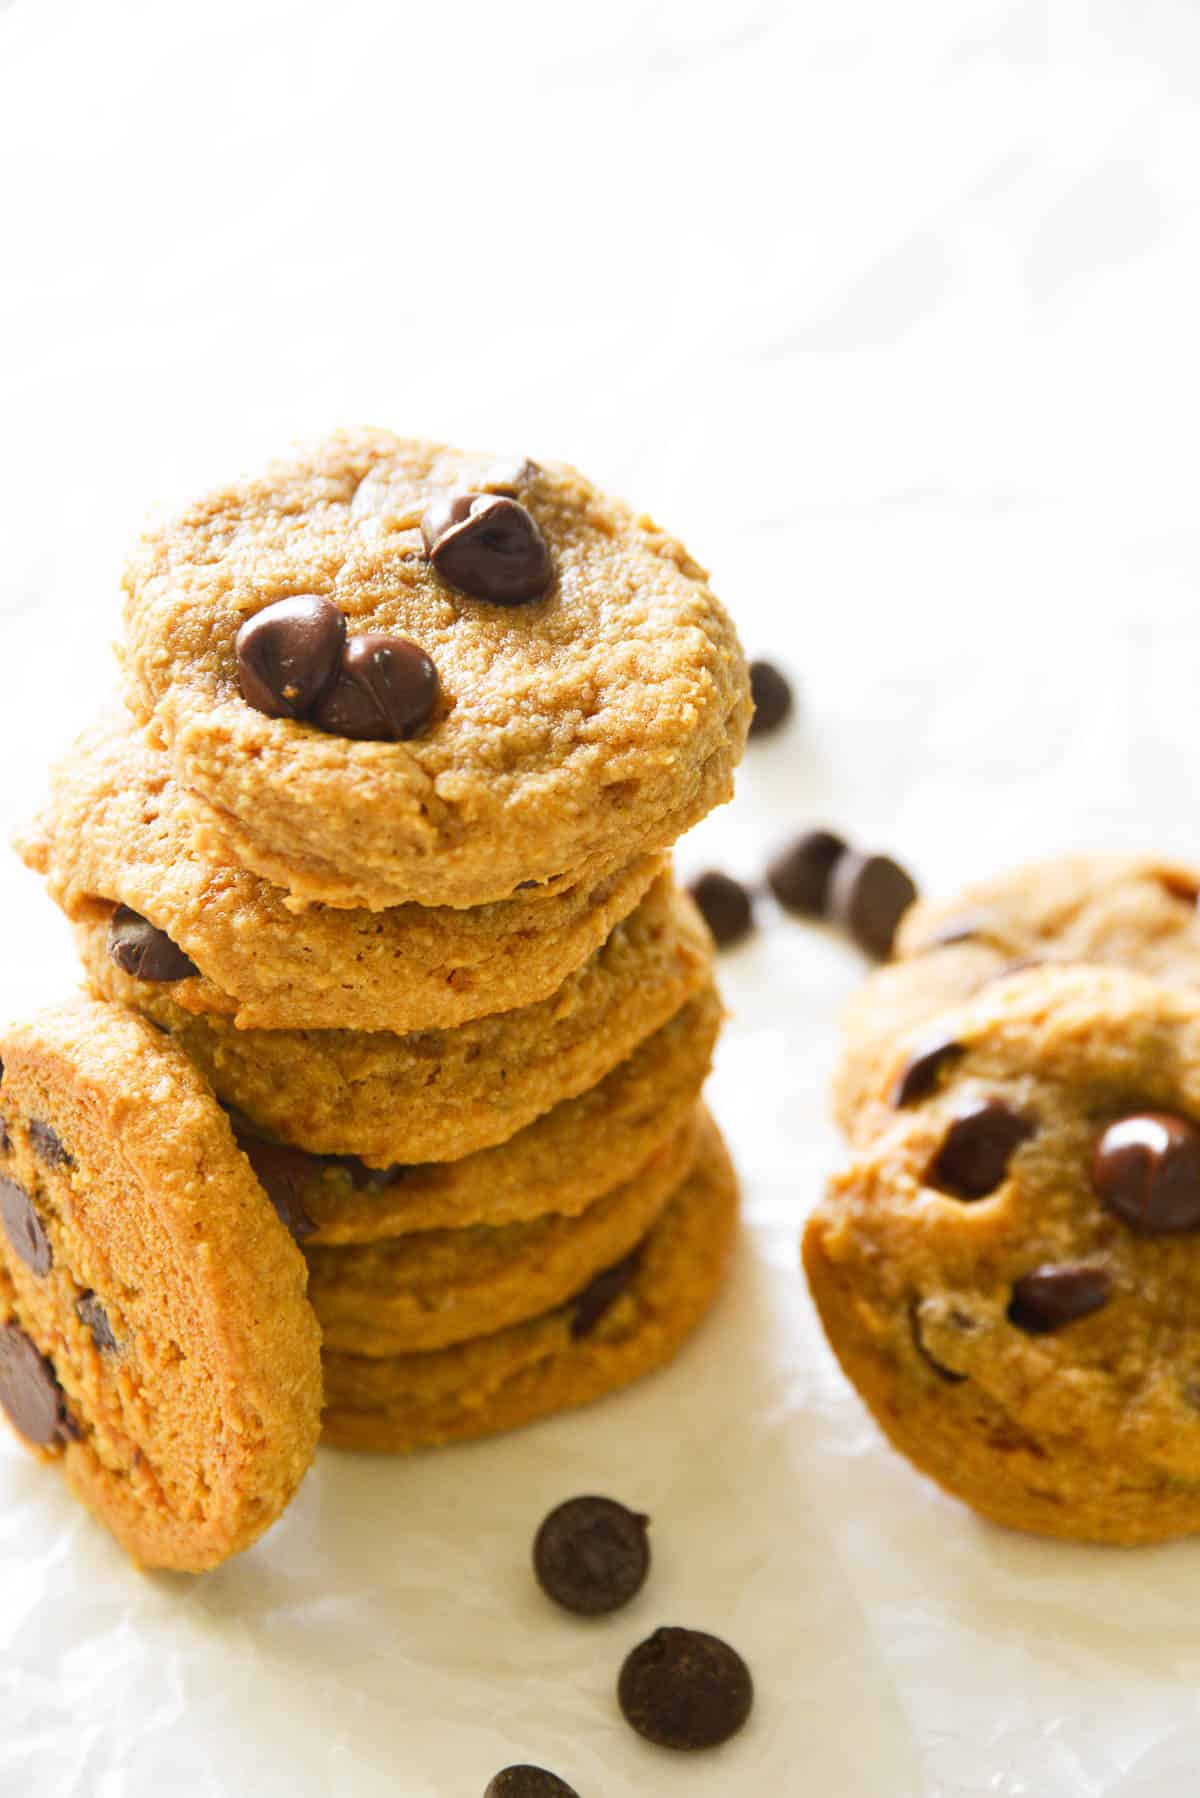 a stock of chocolate chip cookies, surrounded by chocolate chips